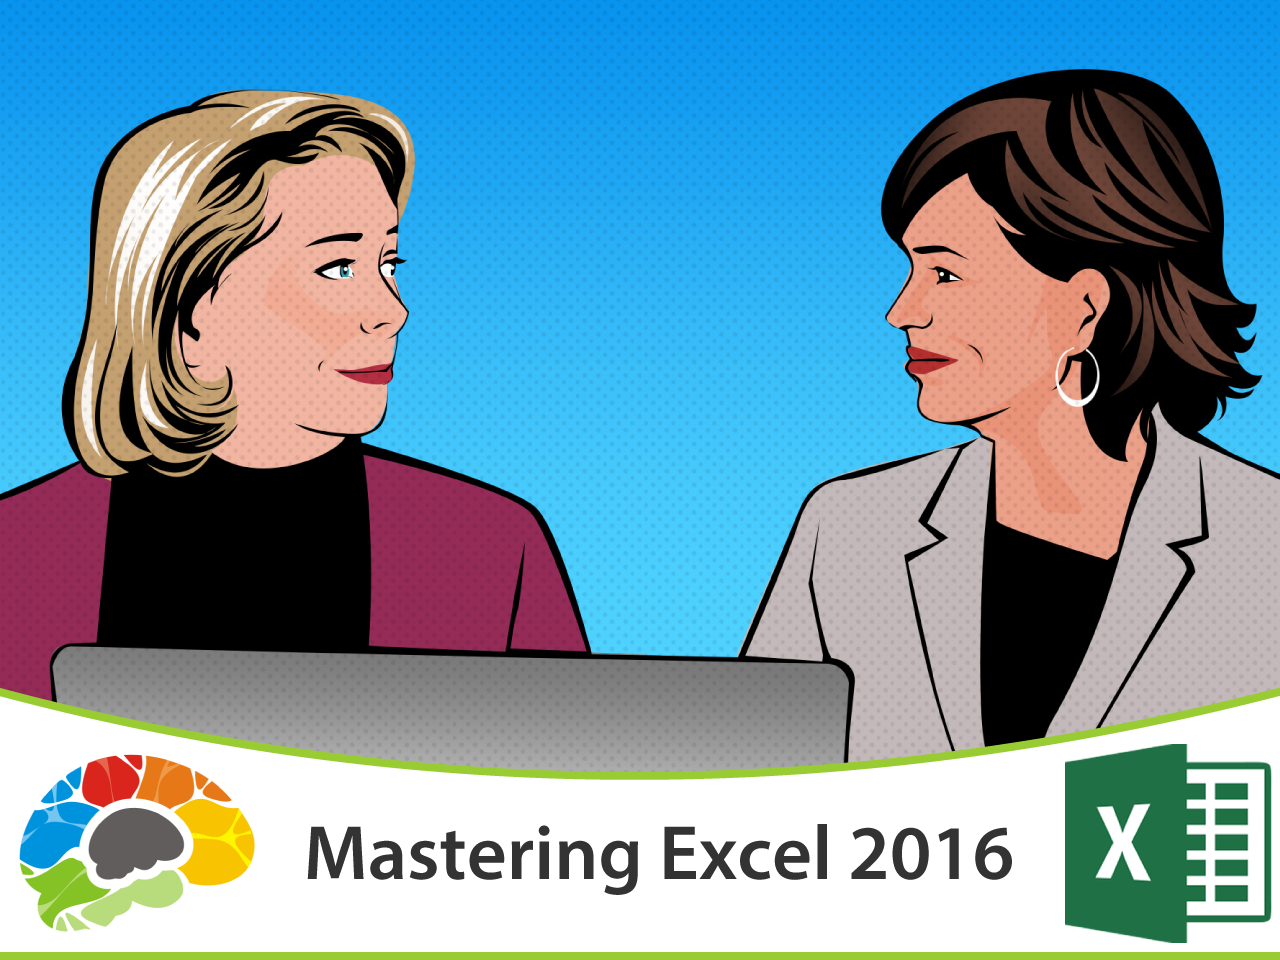 Mastering Excel 2016 - SkillsFuture Online Course